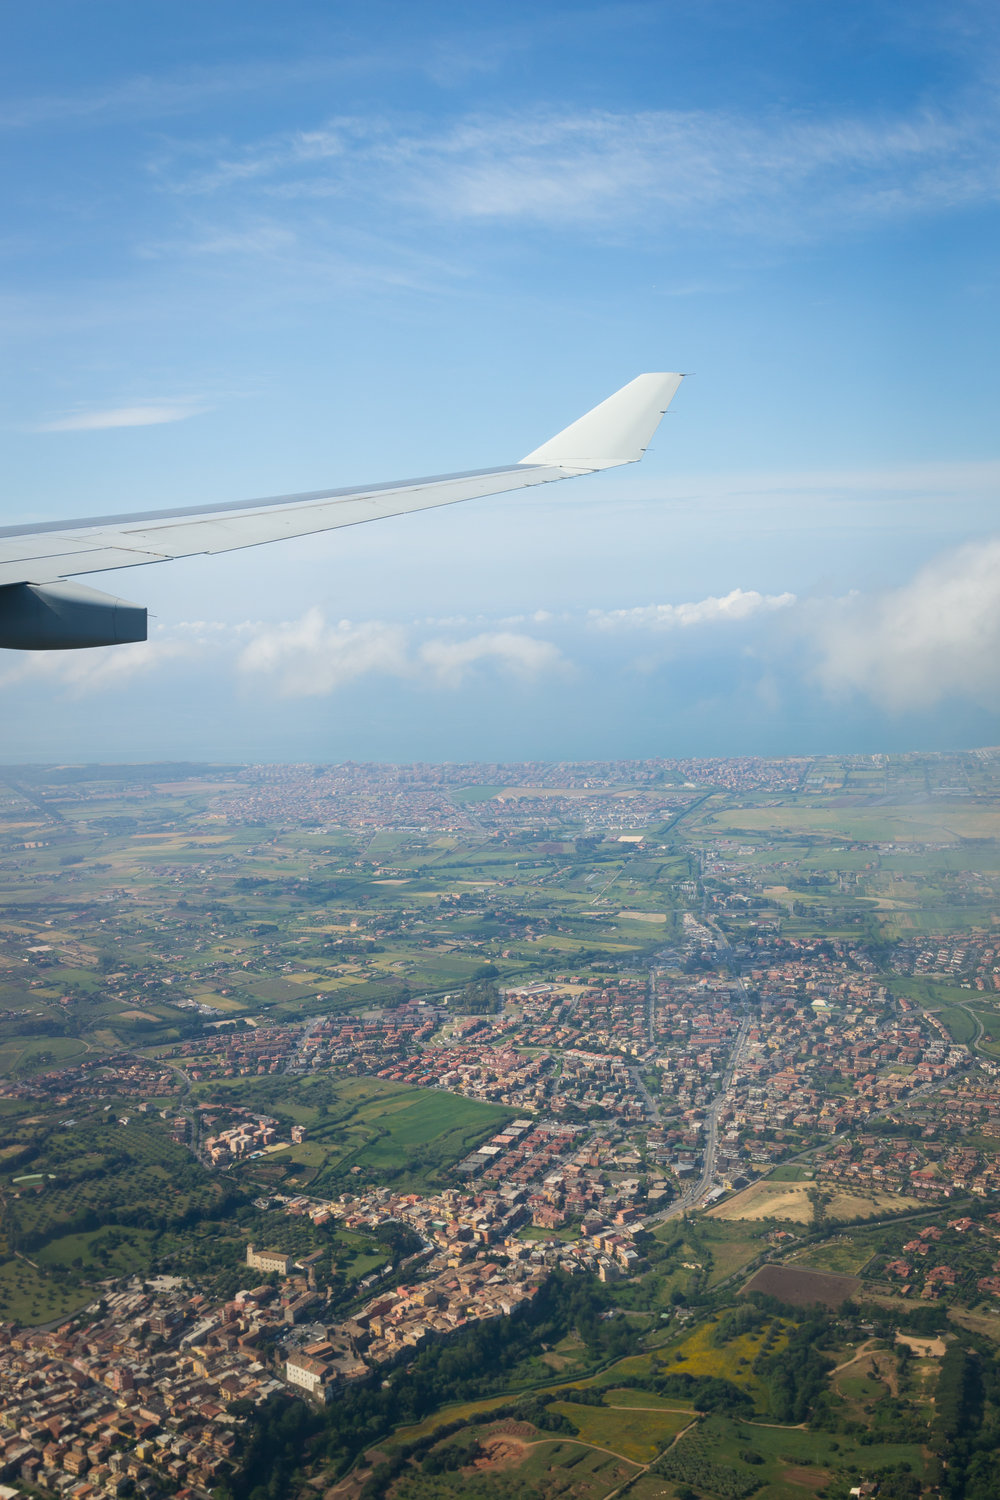 Flying into Rome International Airport on May 9, 201